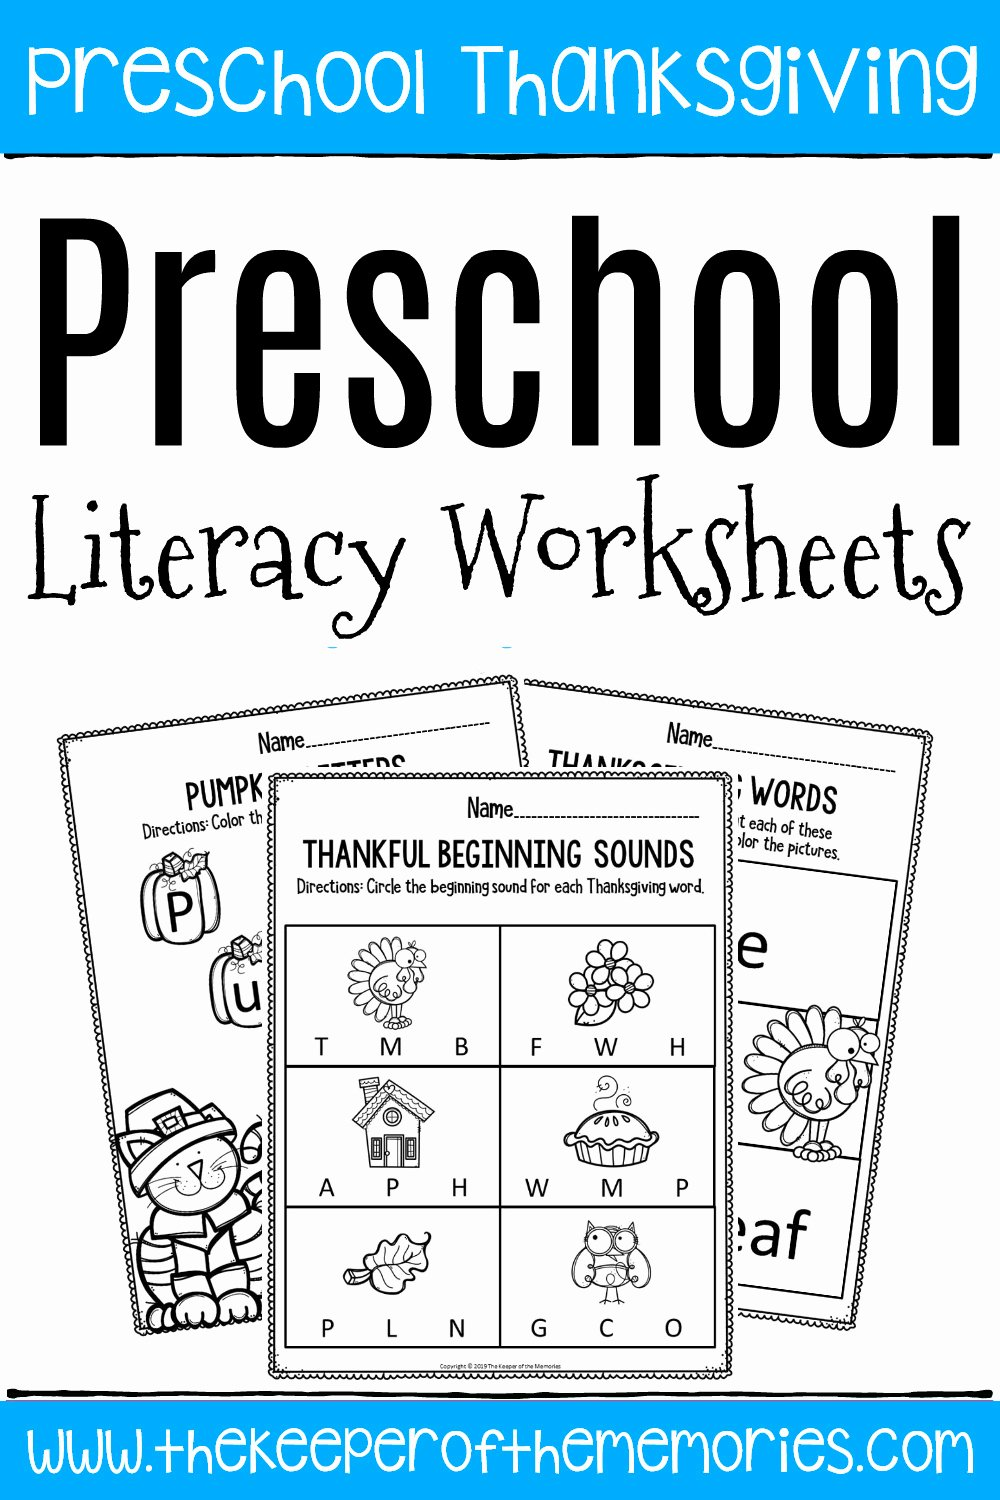 Printable Thanksgiving Worksheets for Preschoolers Fresh Printable Literacy Thanksgiving Preschool Worksheets